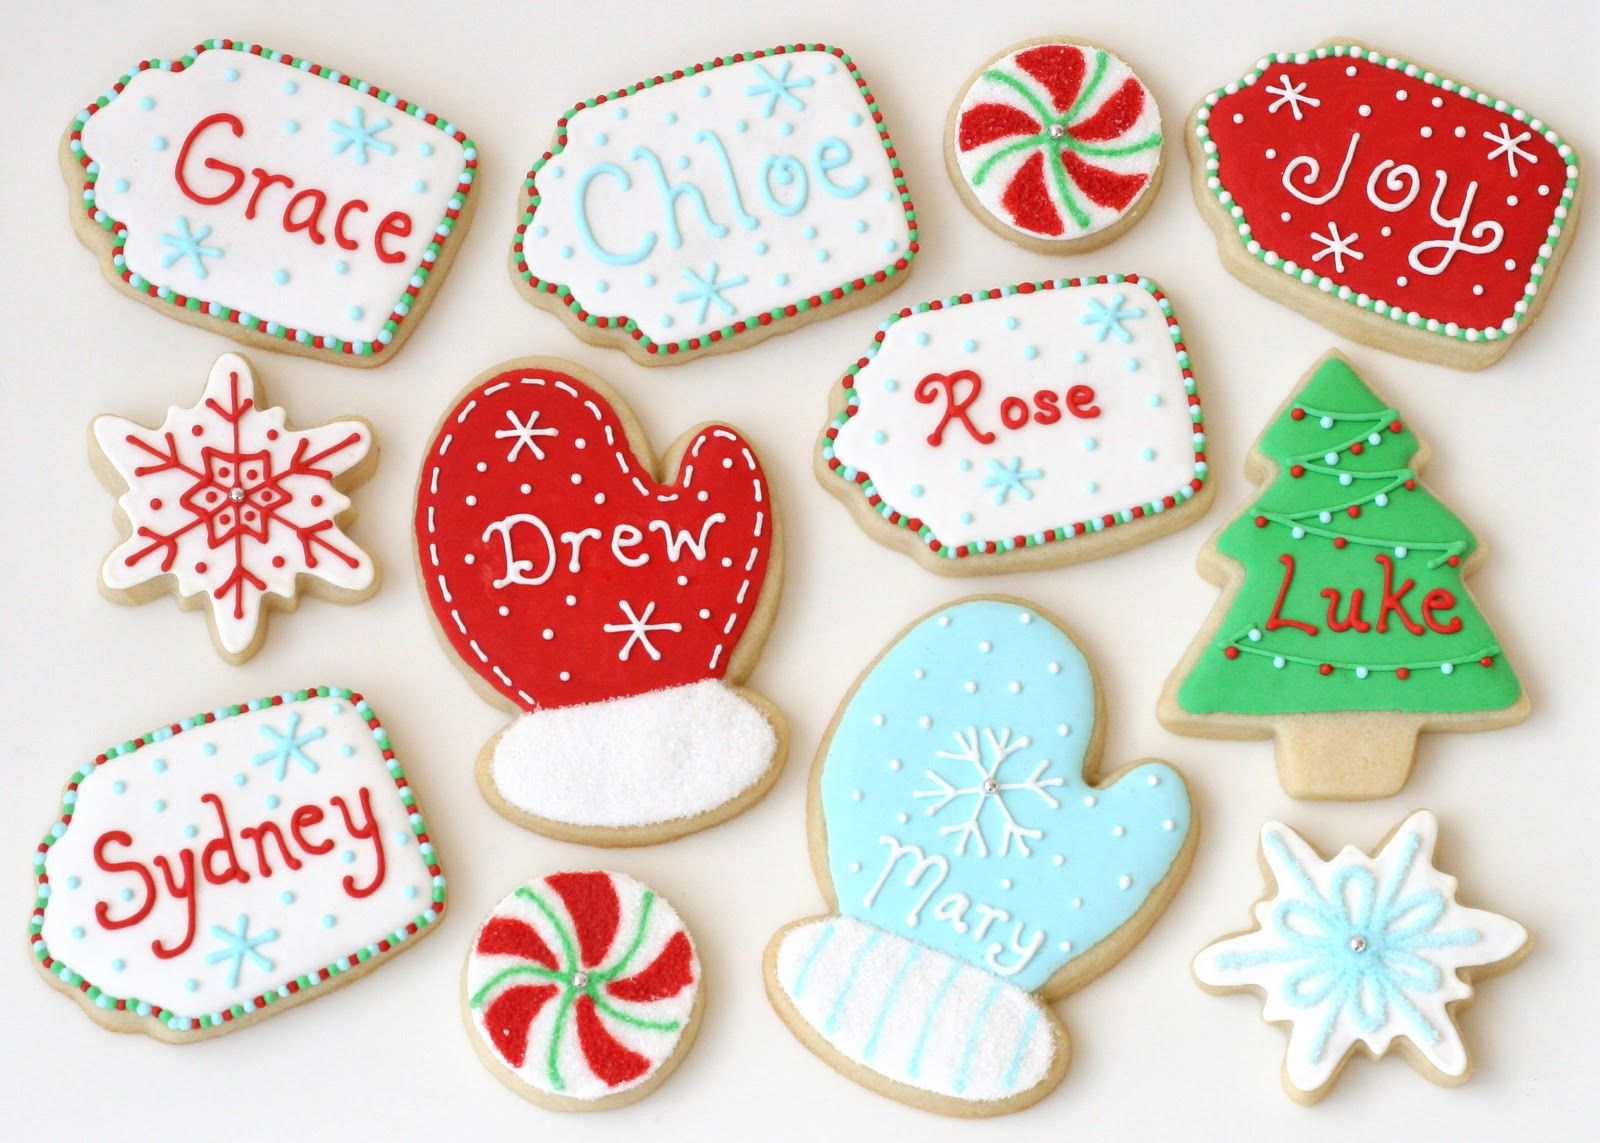 Beautiful Holiday Cookie Decorating Ideas Part - 3: Personalized Christmas Cookies - By Glorious Treats